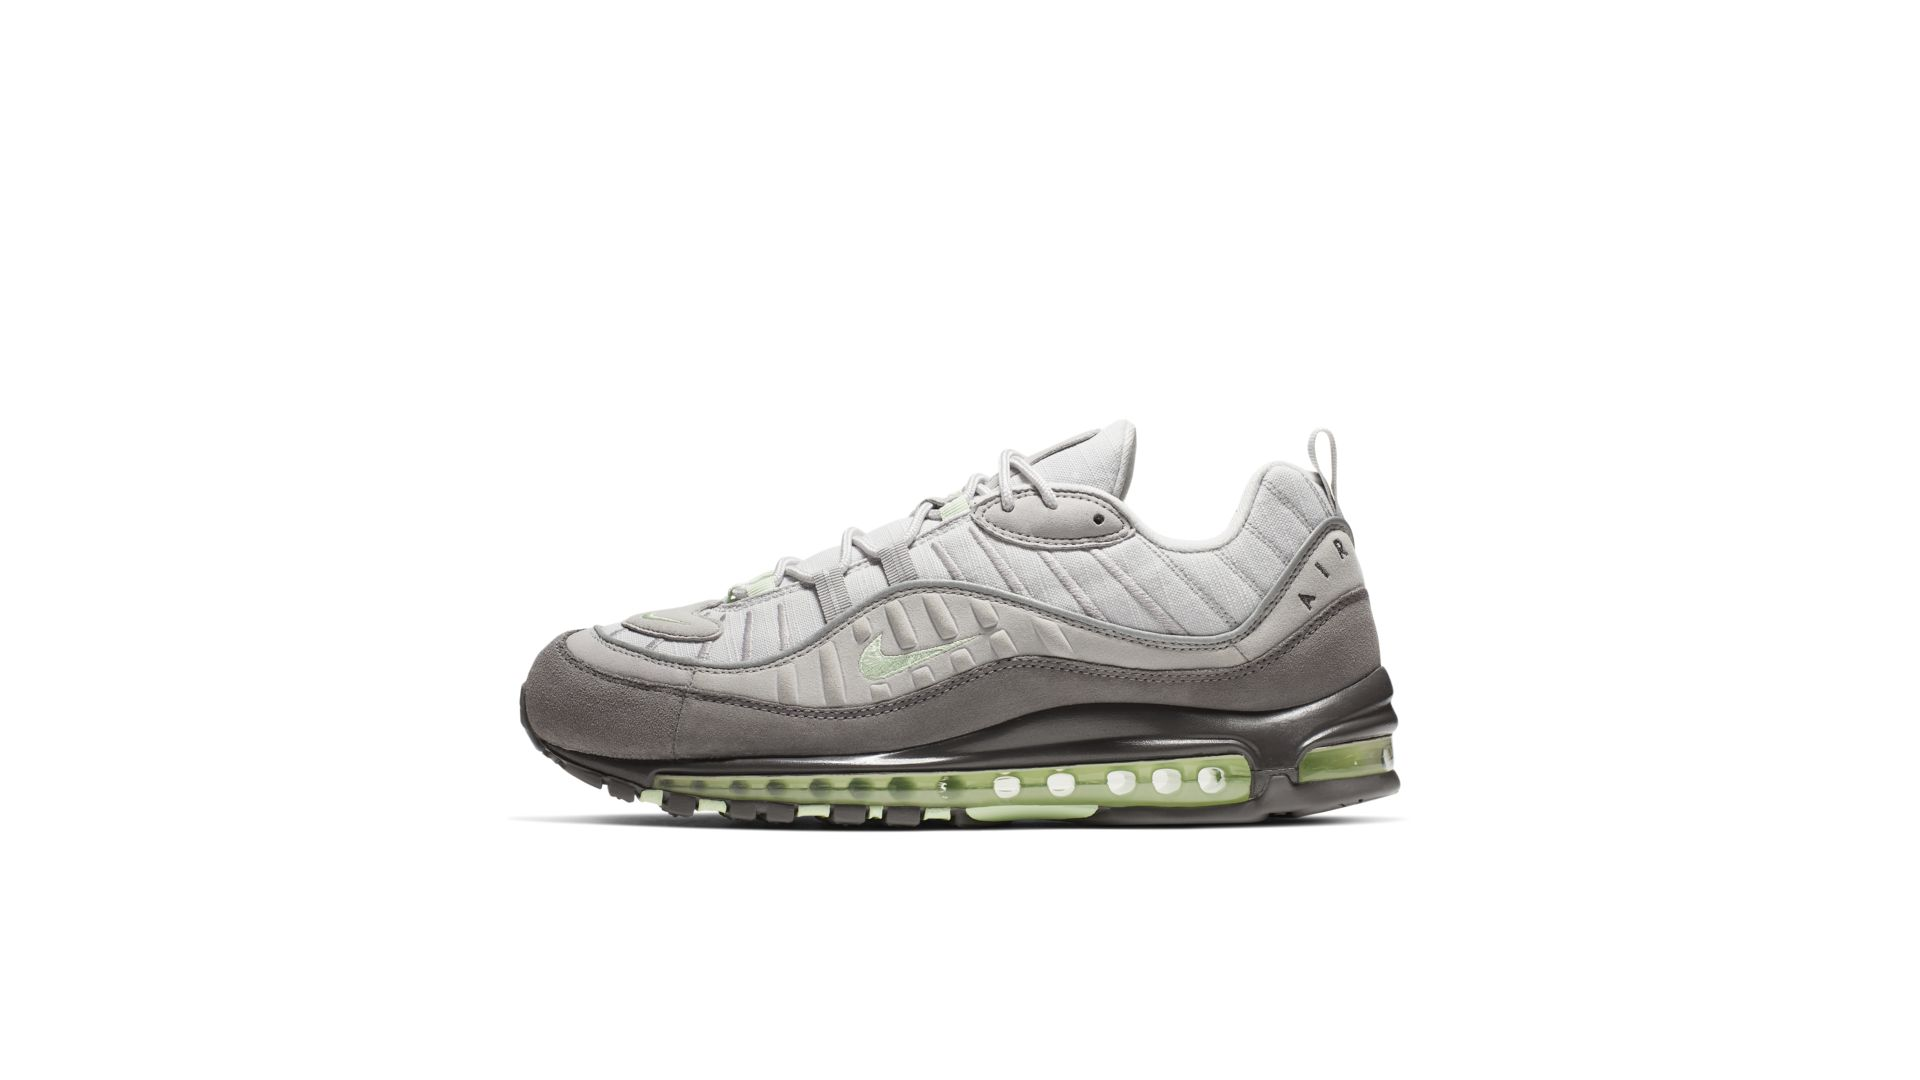 Nike Air Max 98 'Fresh Mint' (640744-011)